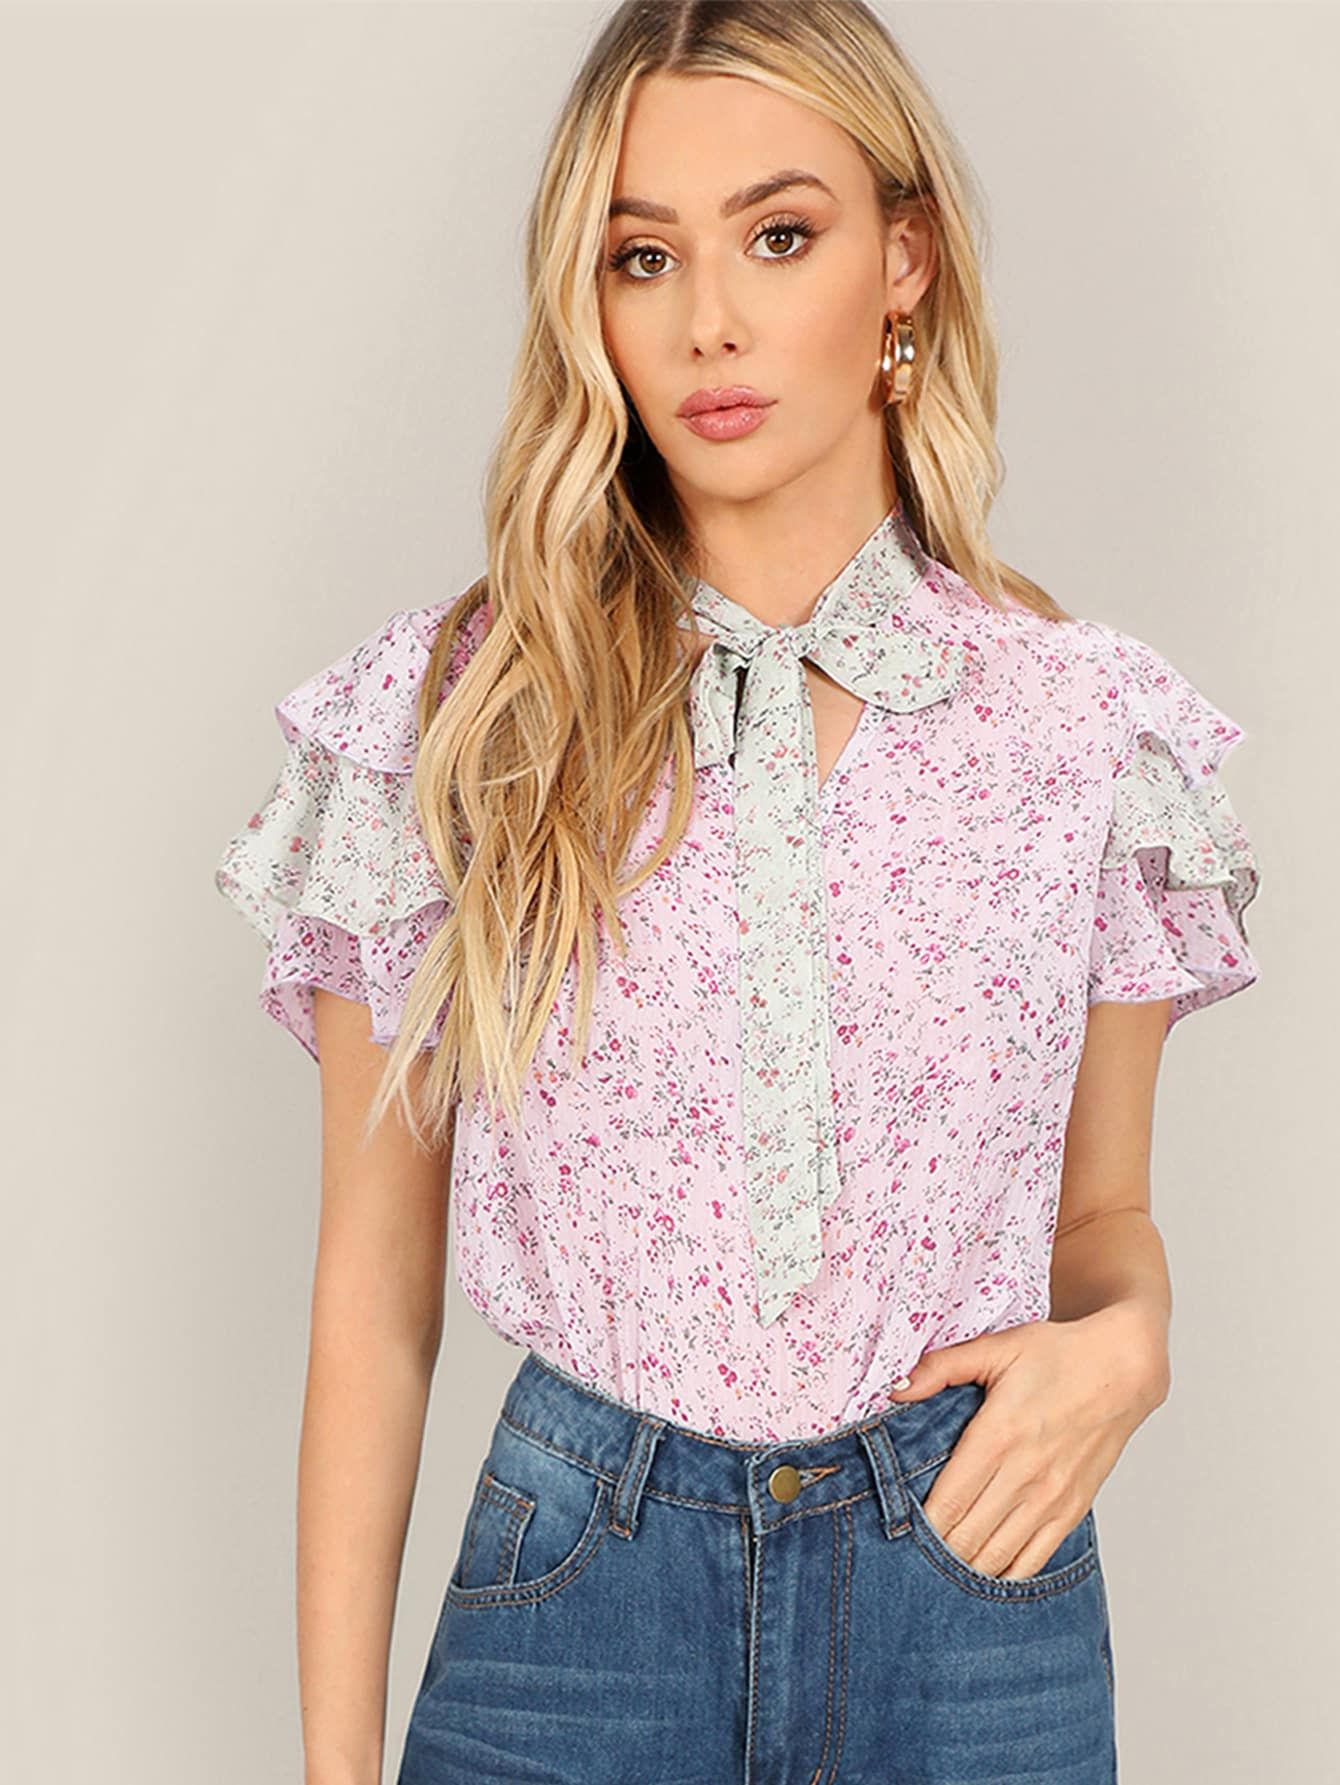 7d2faa7b78 Tie Neck Layered Sleeve Floral Top -SheIn(Sheinside) | Spring and ...